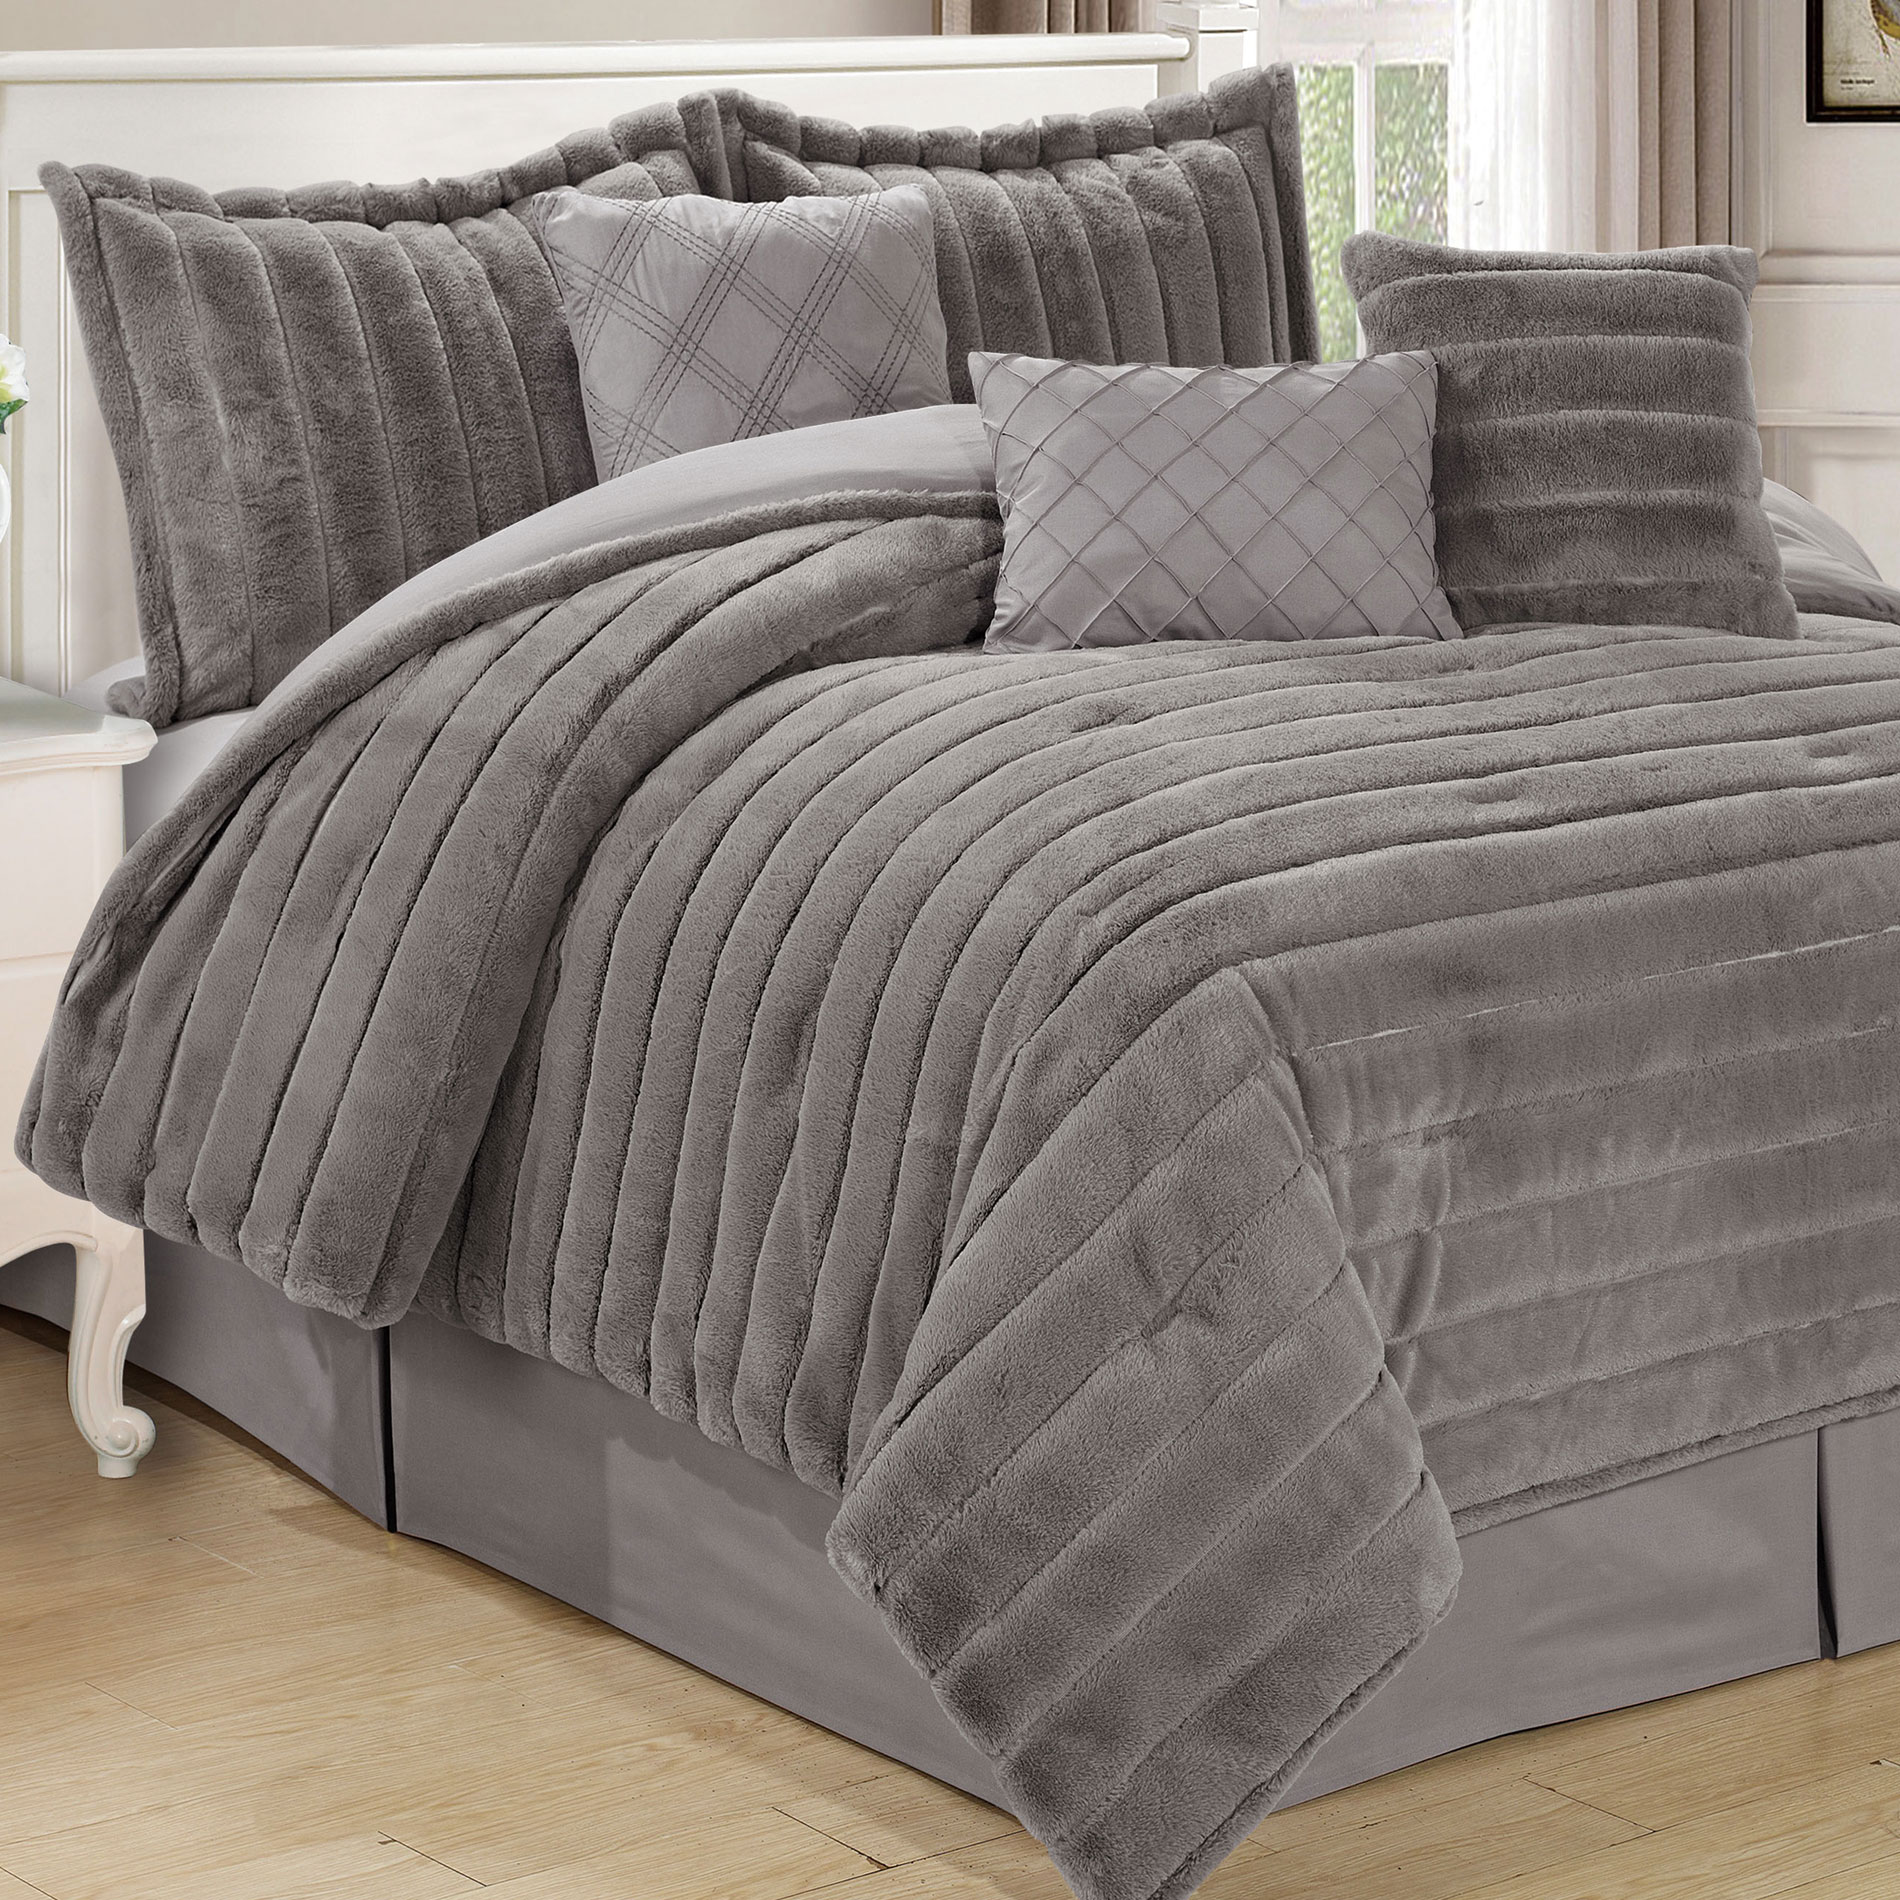 Serenta Rabbit Faux Fur 7 Piece Comforter Sets